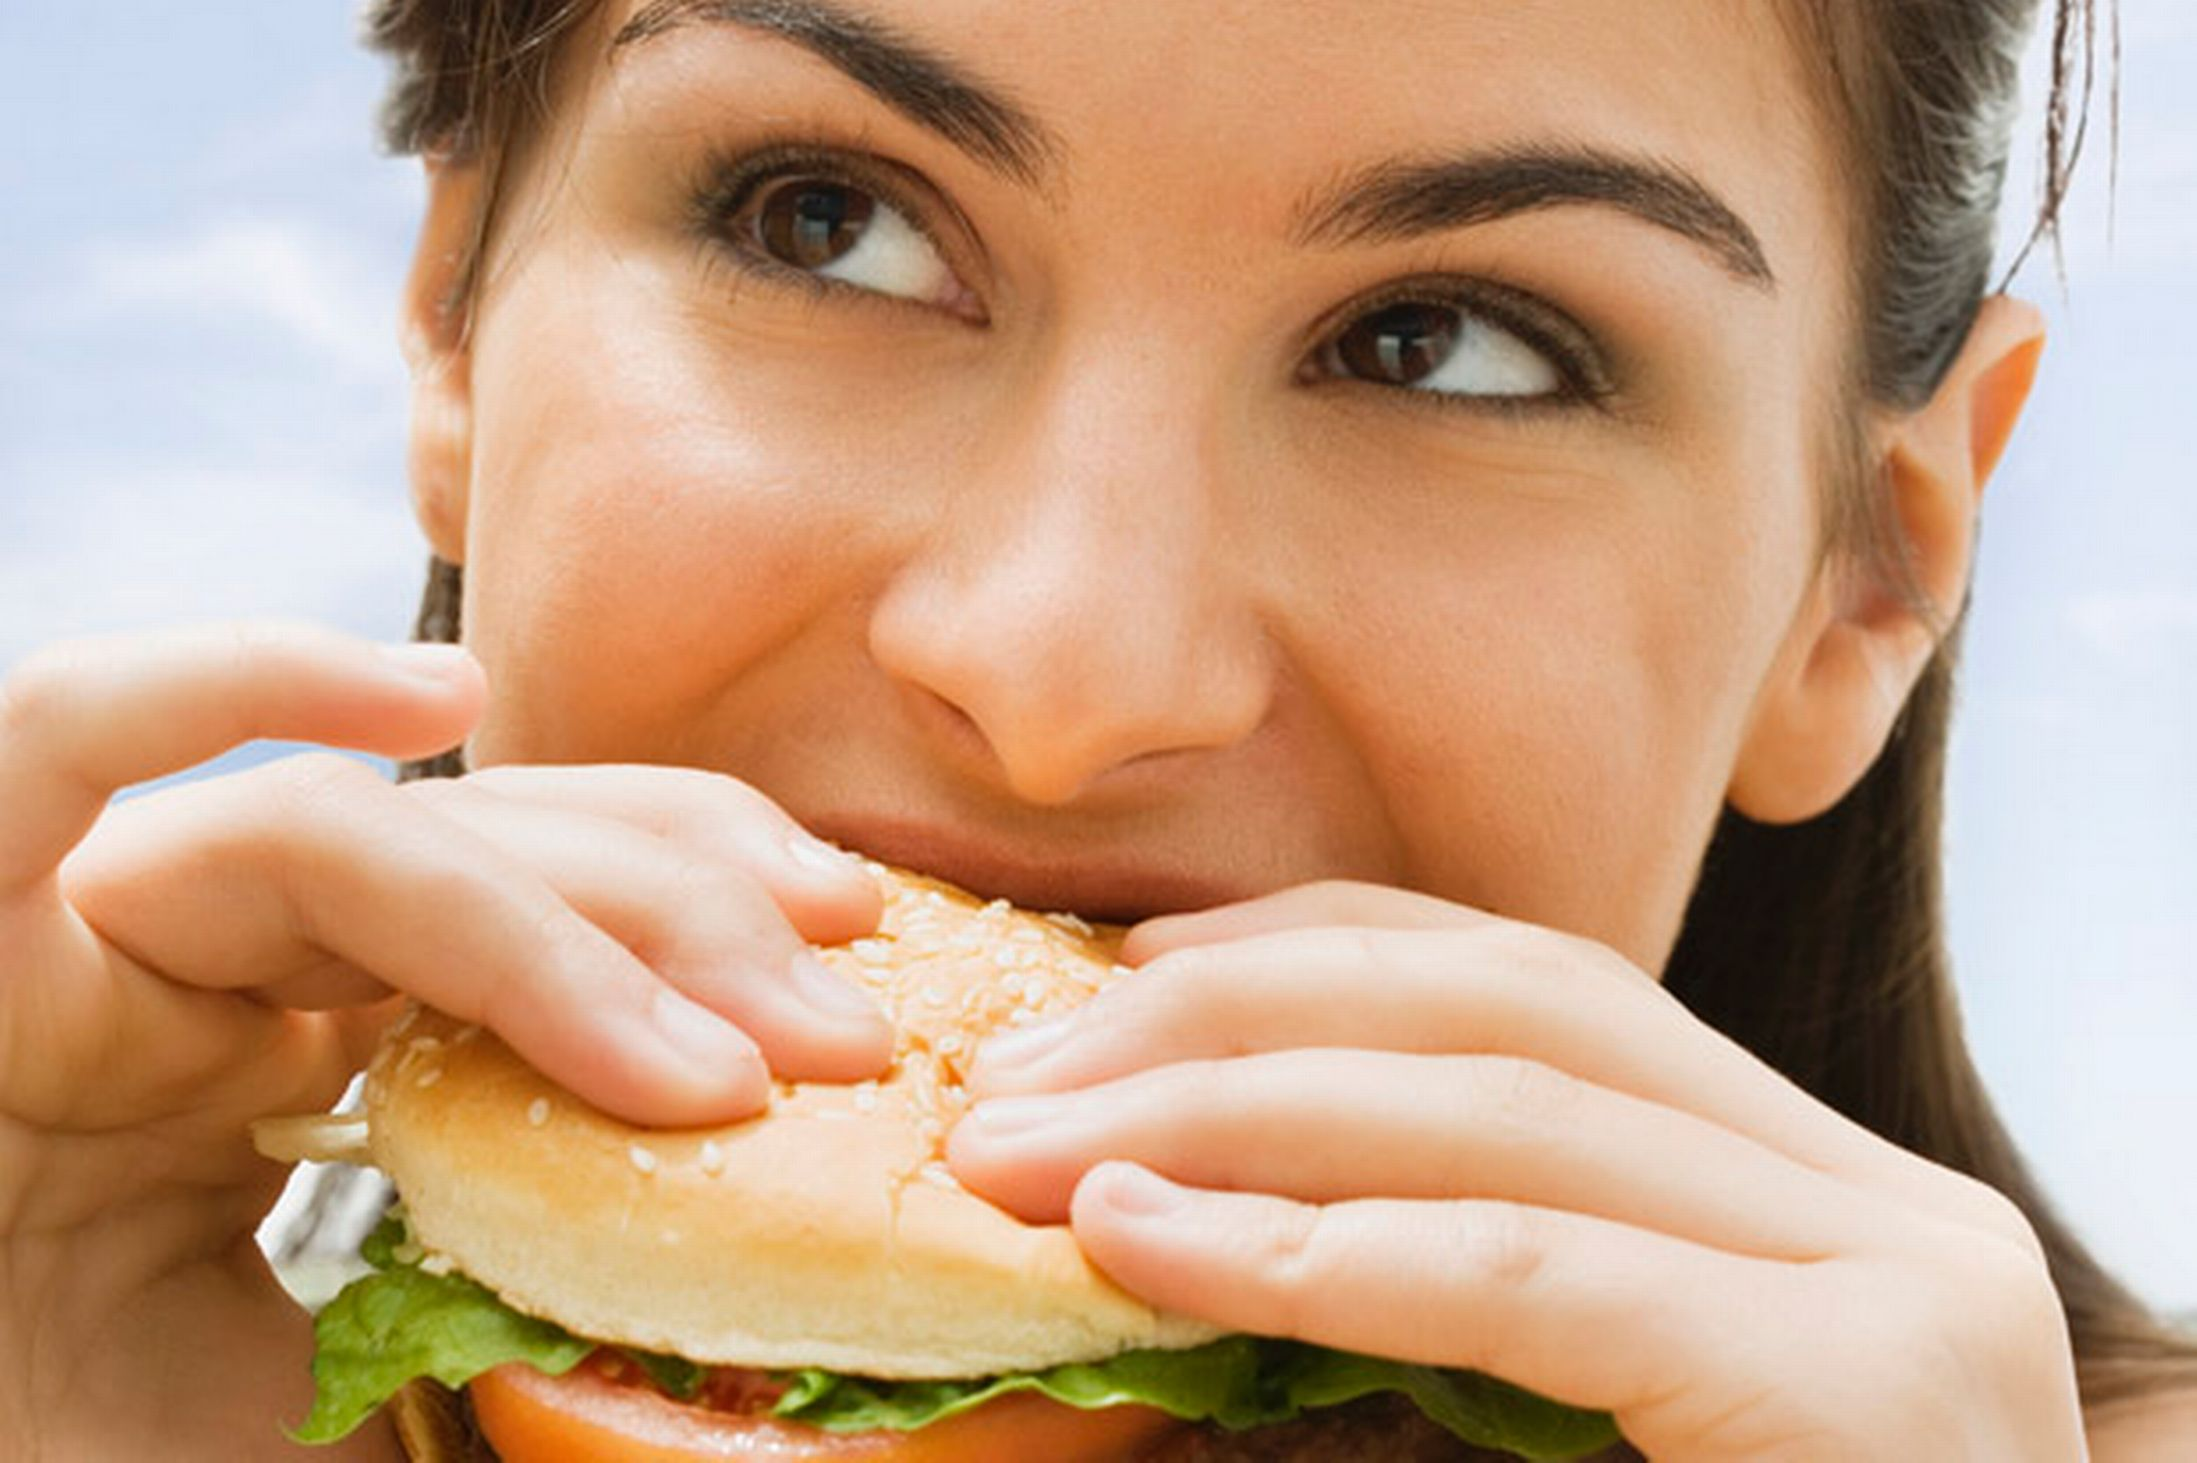 Teenage-girl-eating-a-hamburger-692189